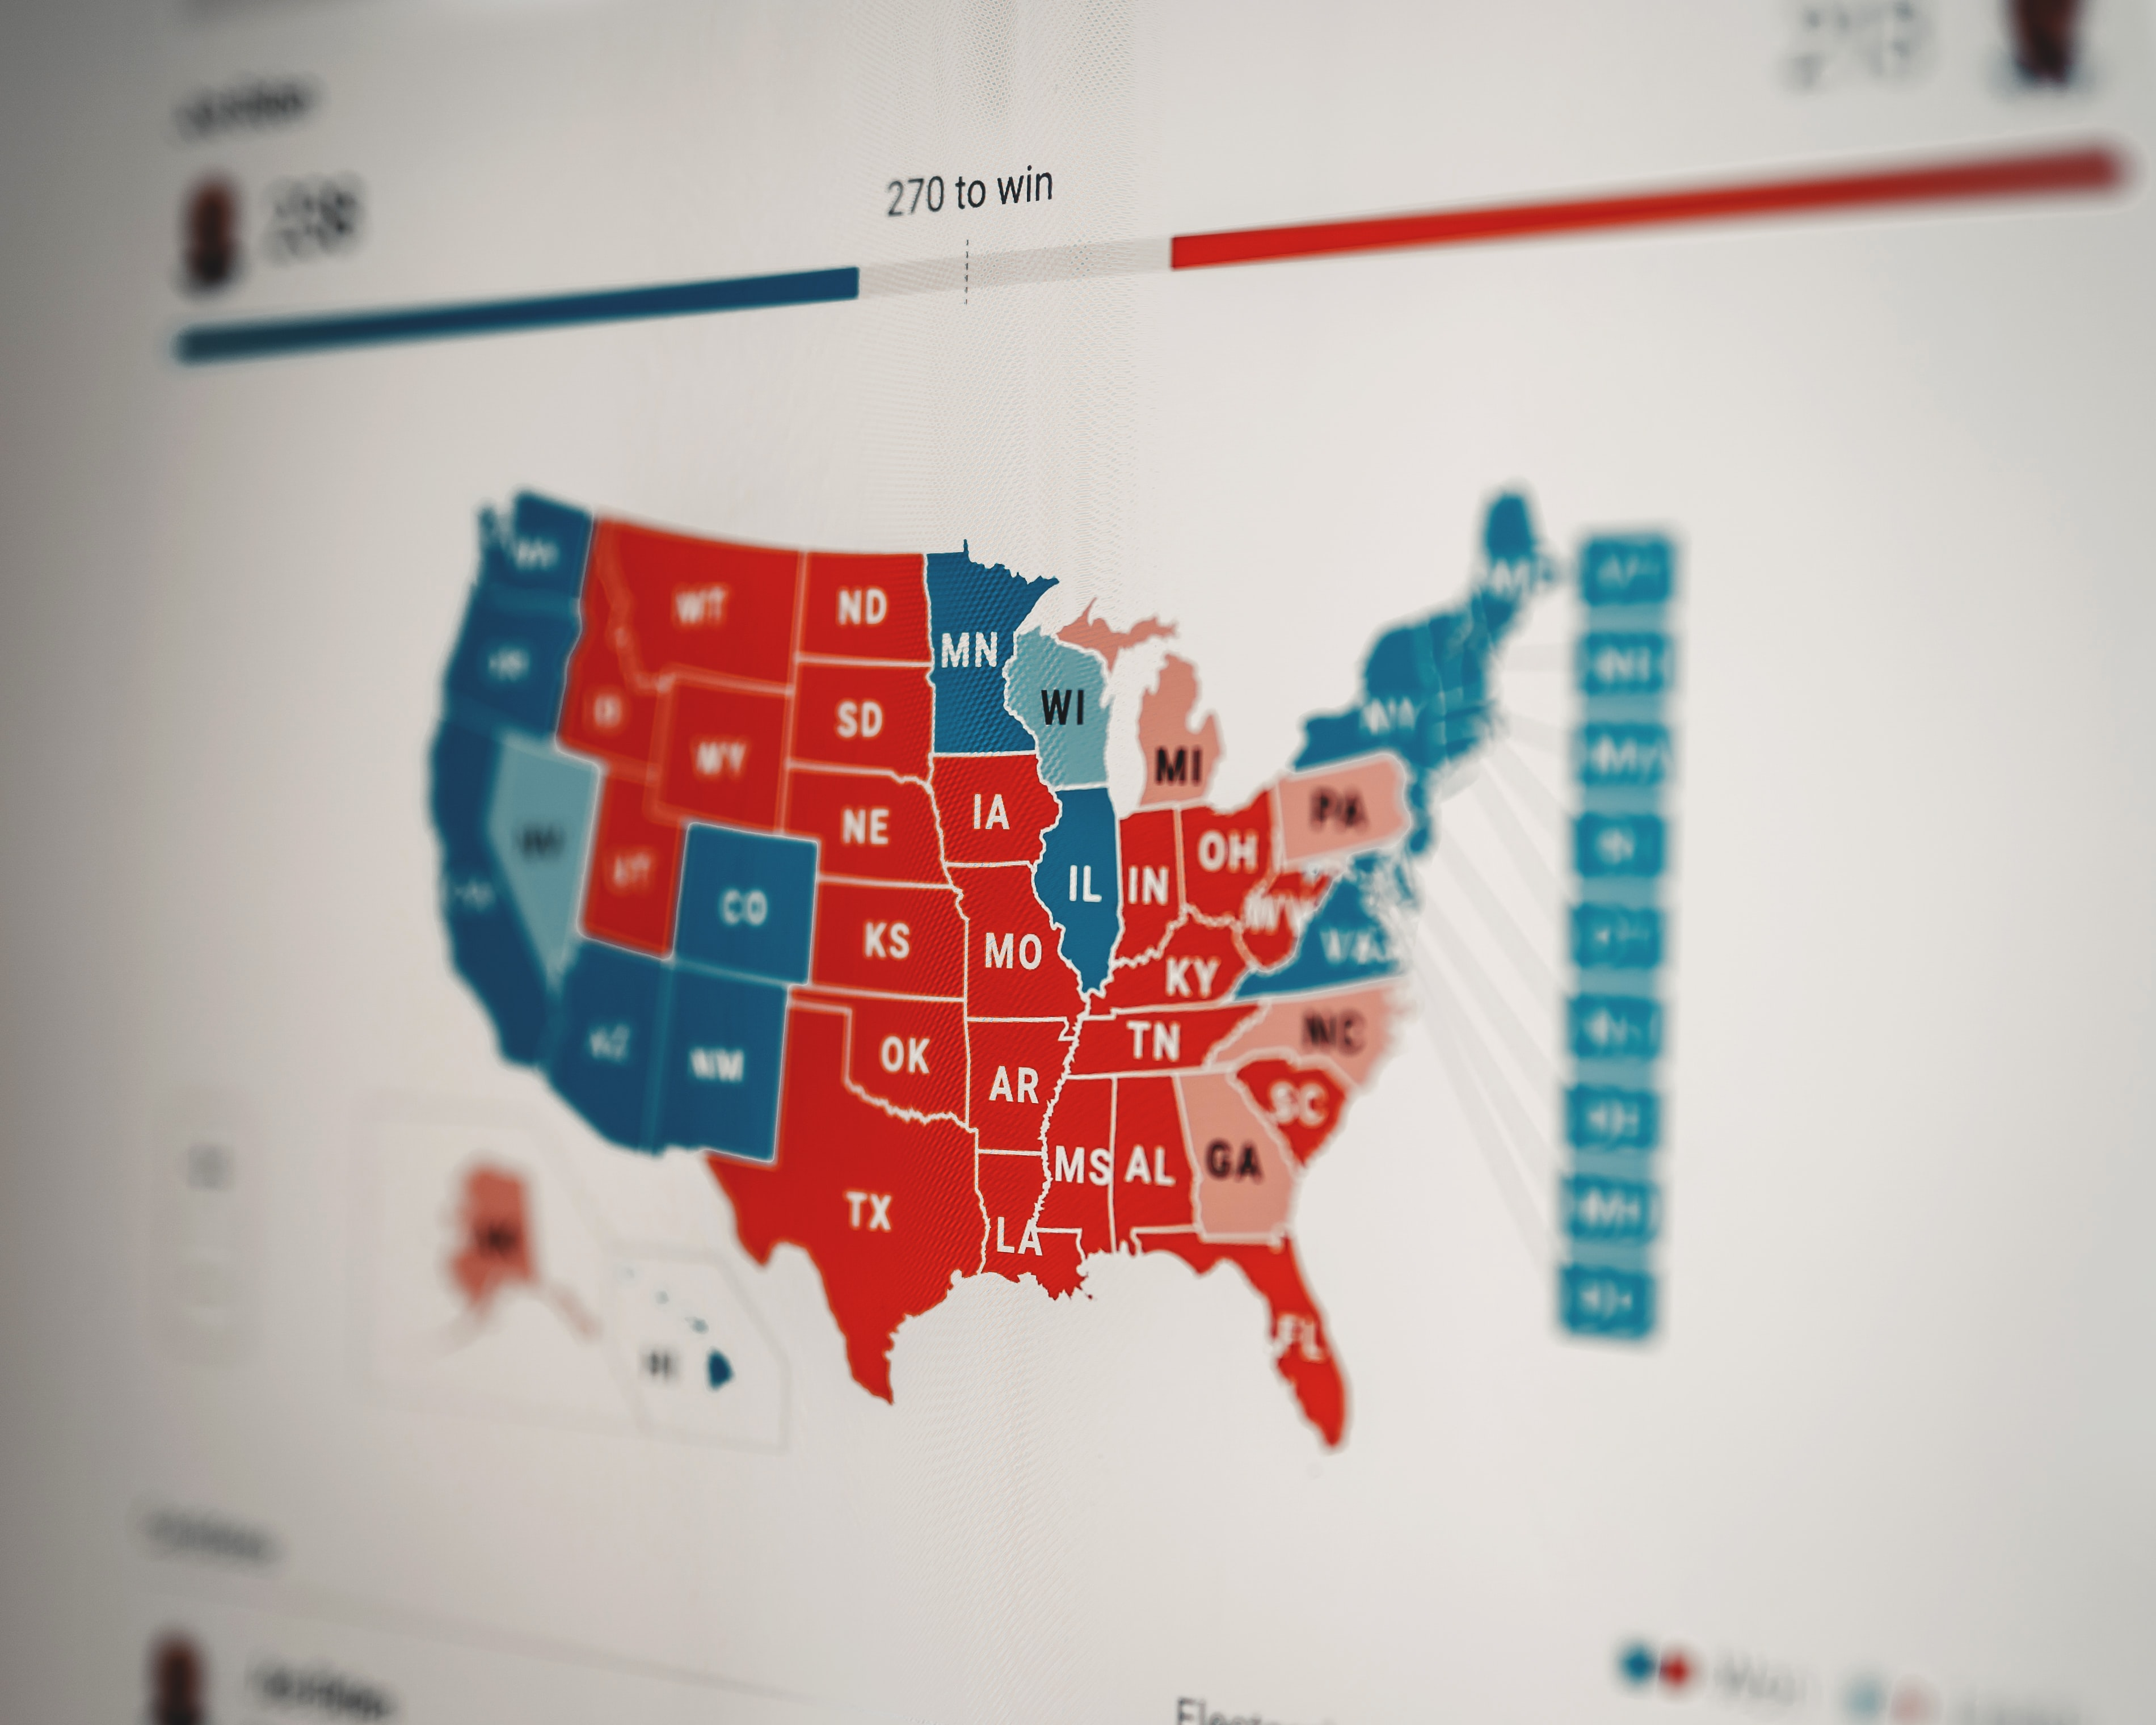 American Inequality: Using Data to Visualize Social Change